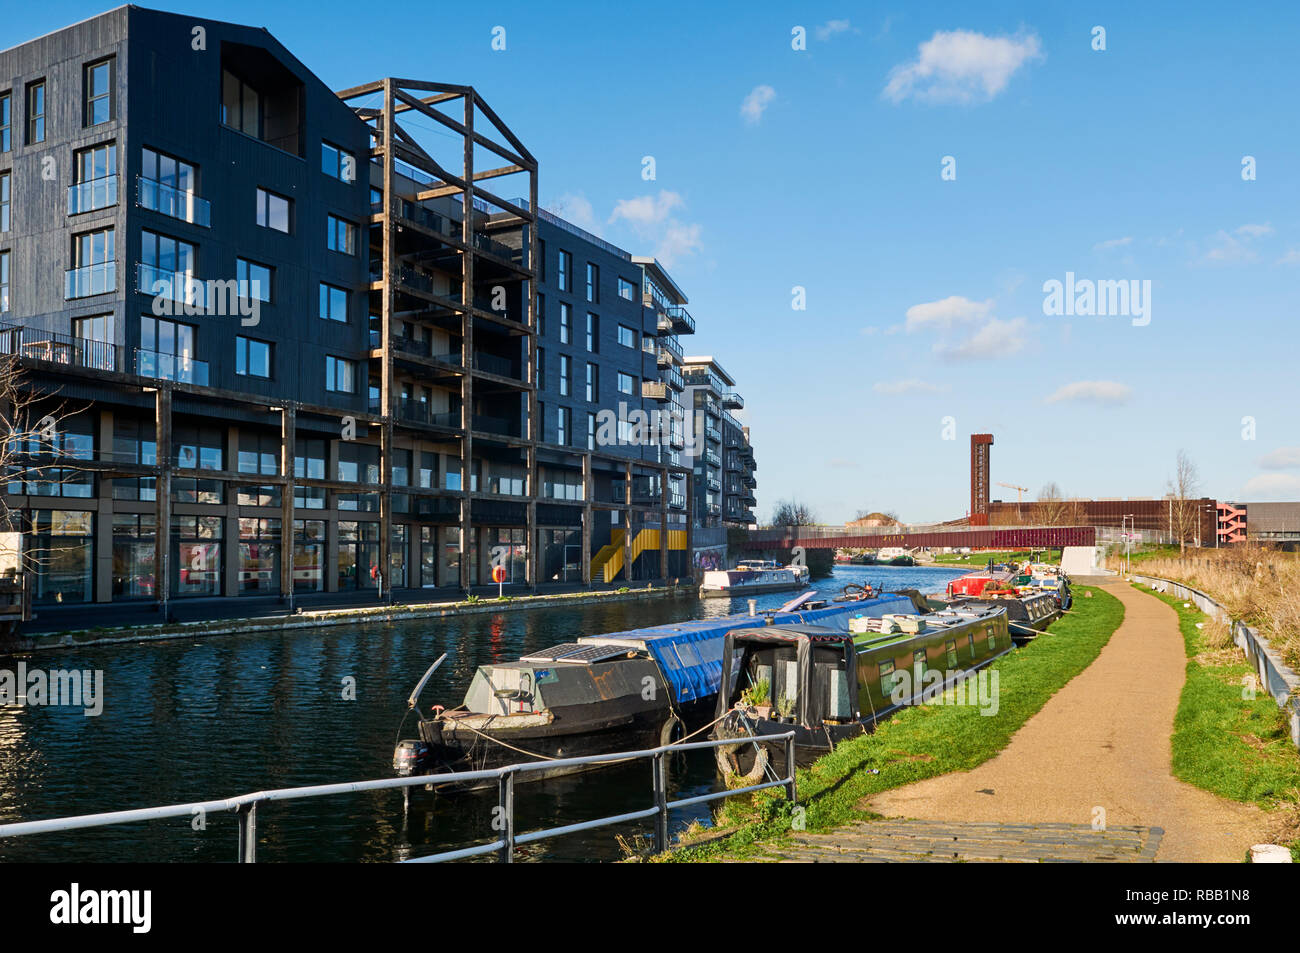 New apartments on the River Lea south of Hackney Wick, East London UK - Stock Image